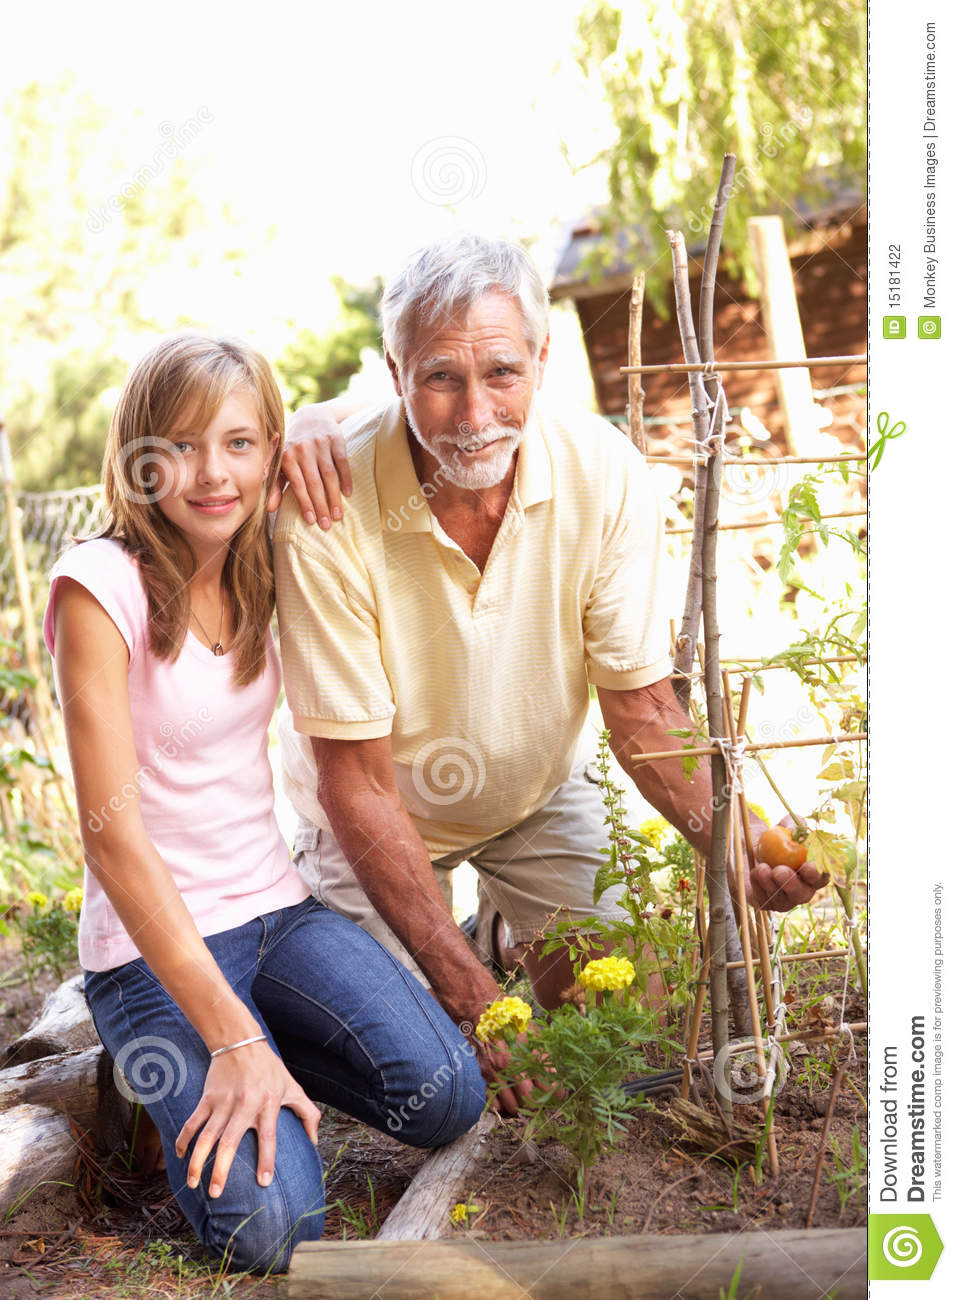 Teenage Granddaughter And Grandfather Relaxing In